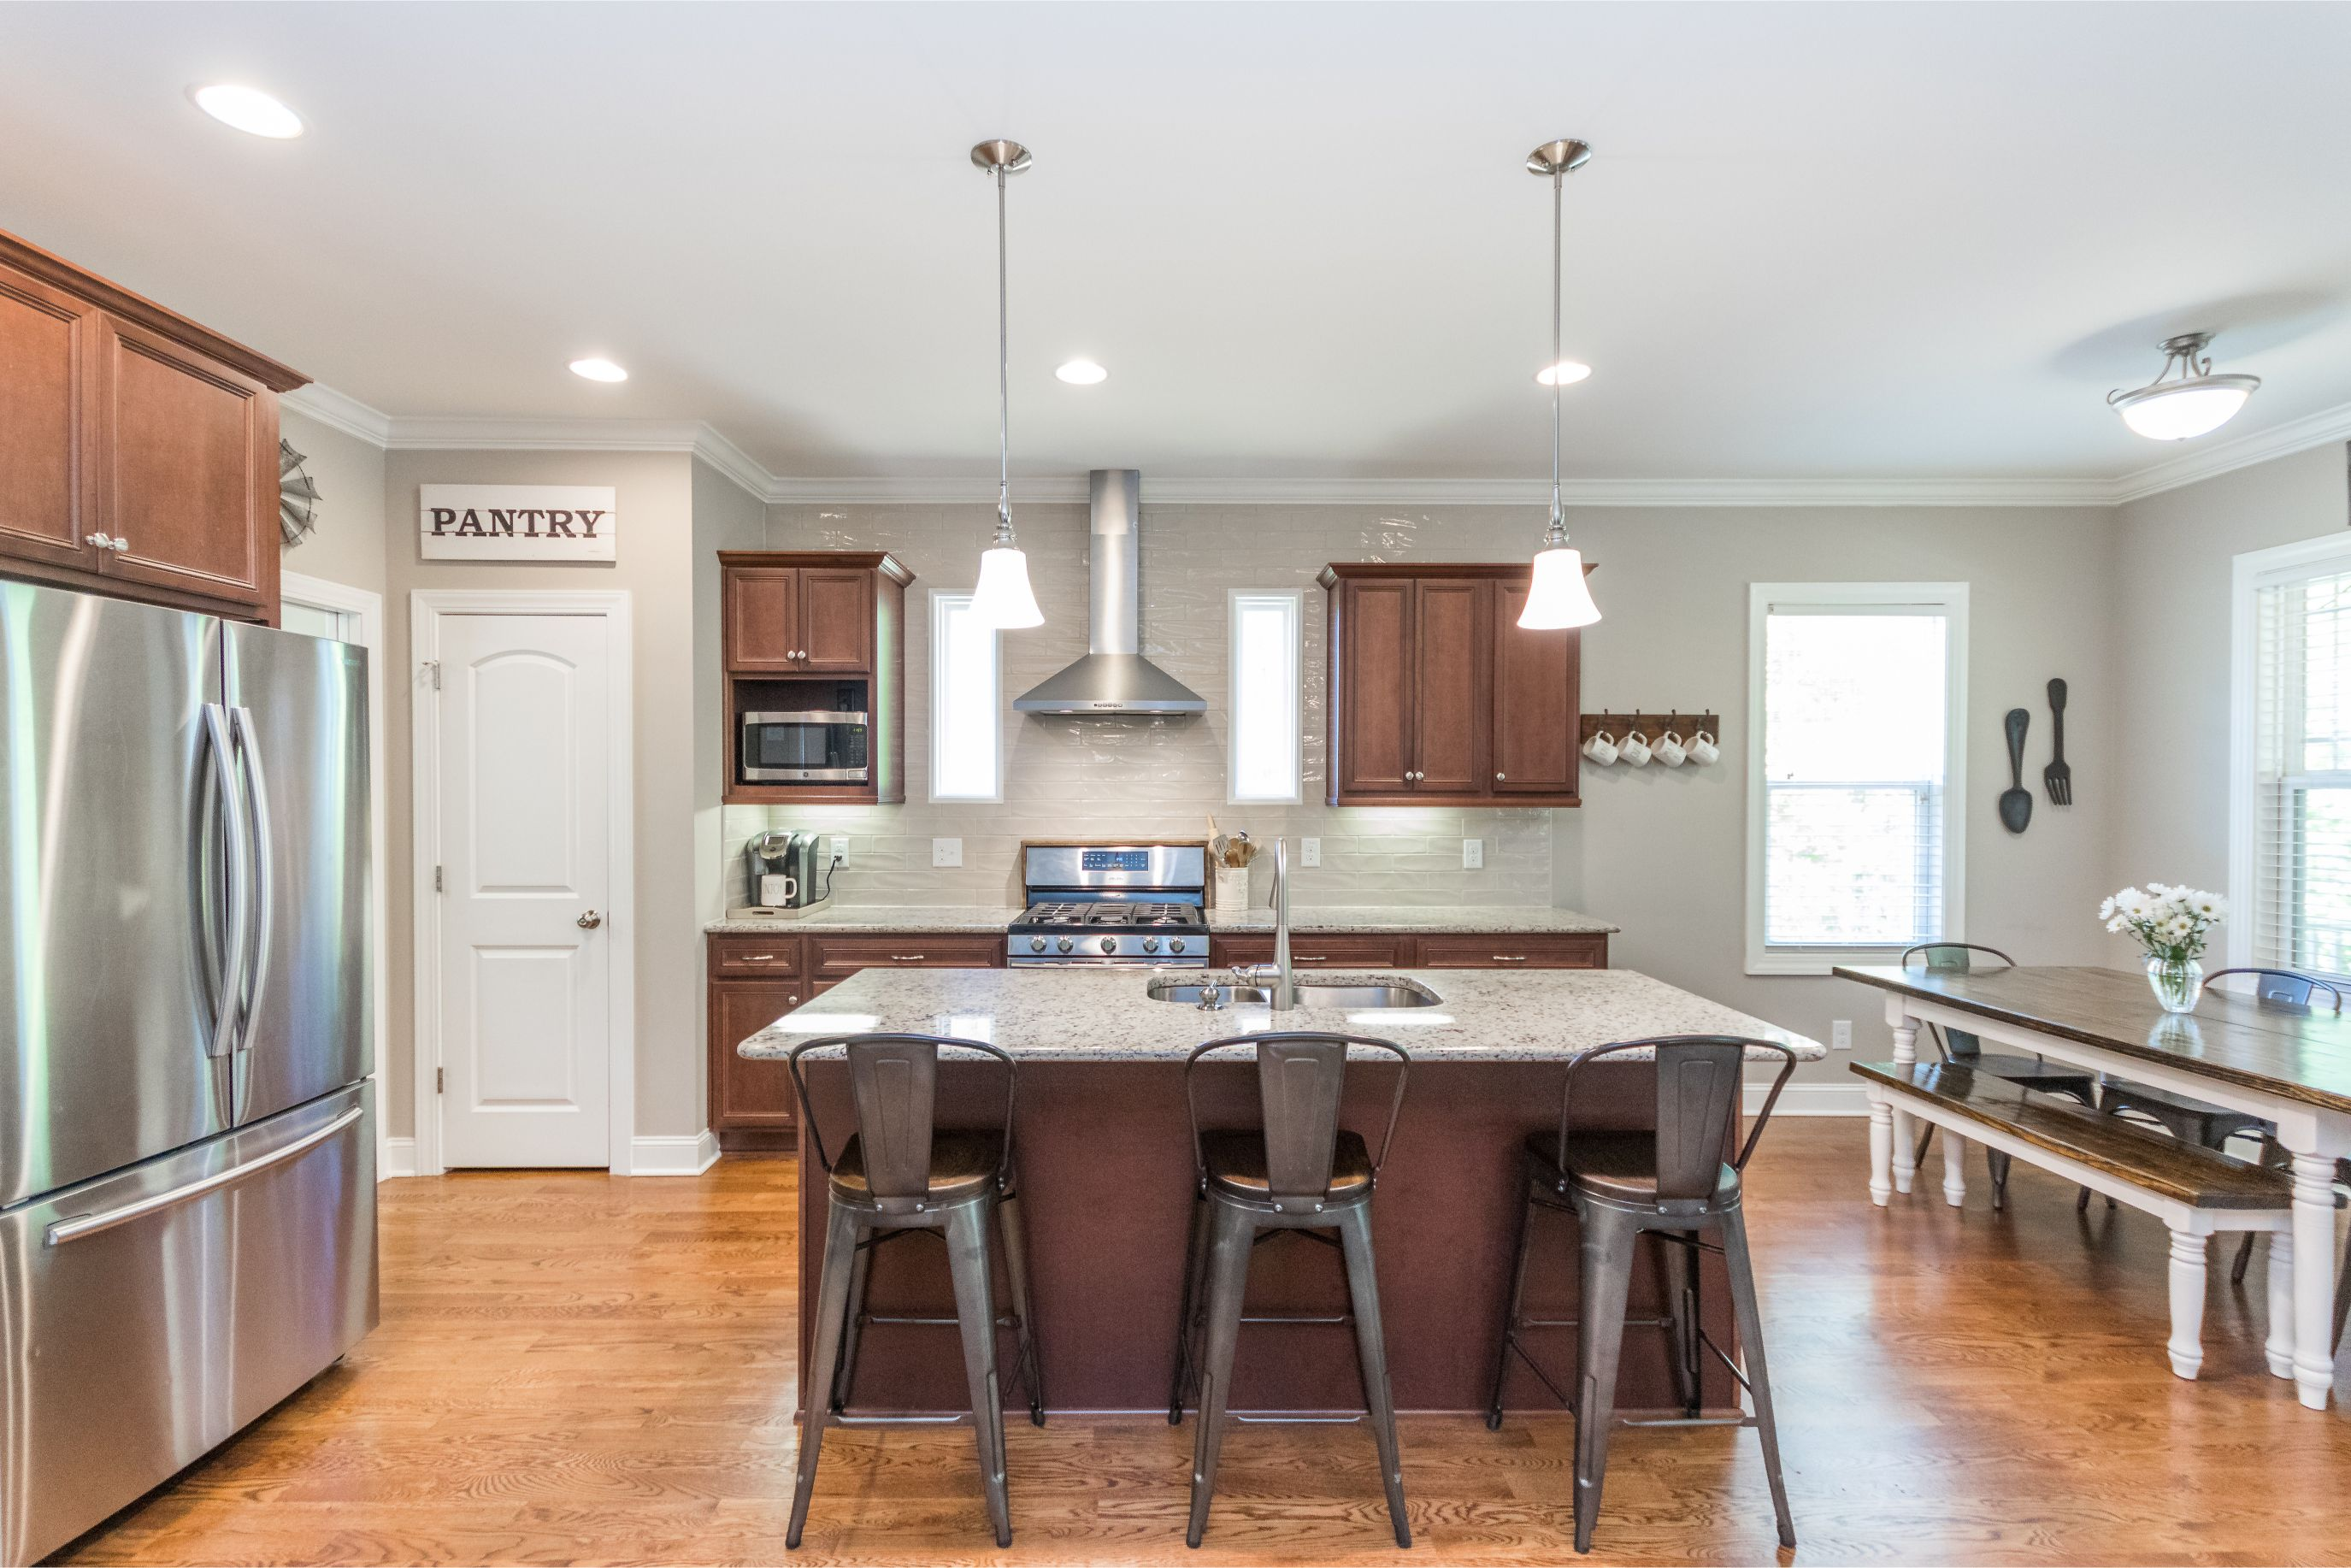 Stainless Steel appliances, white subway backsplash, metal stools, and pantry sign all bring this kitchen together